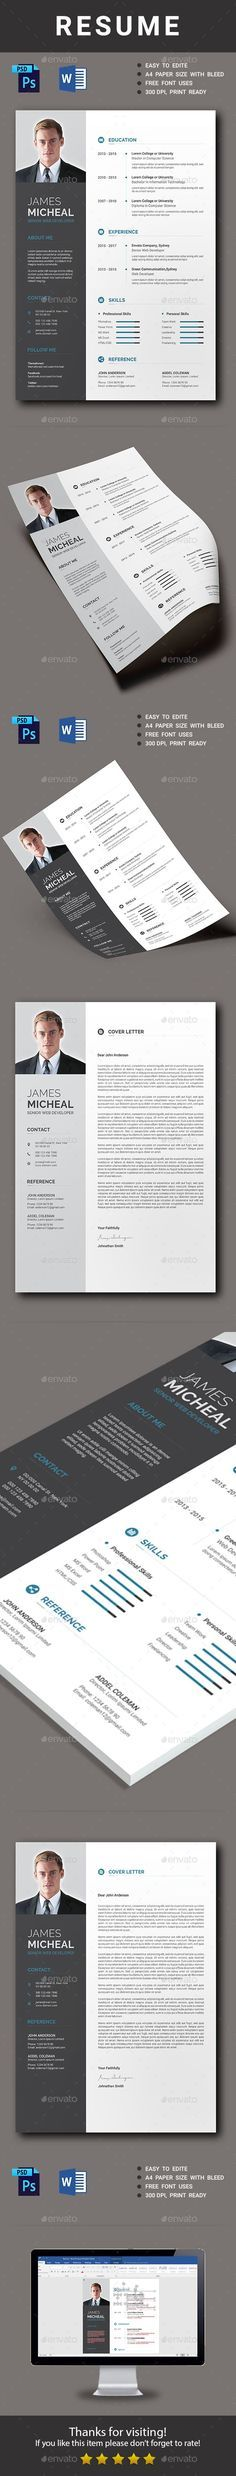 cv and resume format%0A  Resume  Resumes Stationery Download here  https   graphicriver net